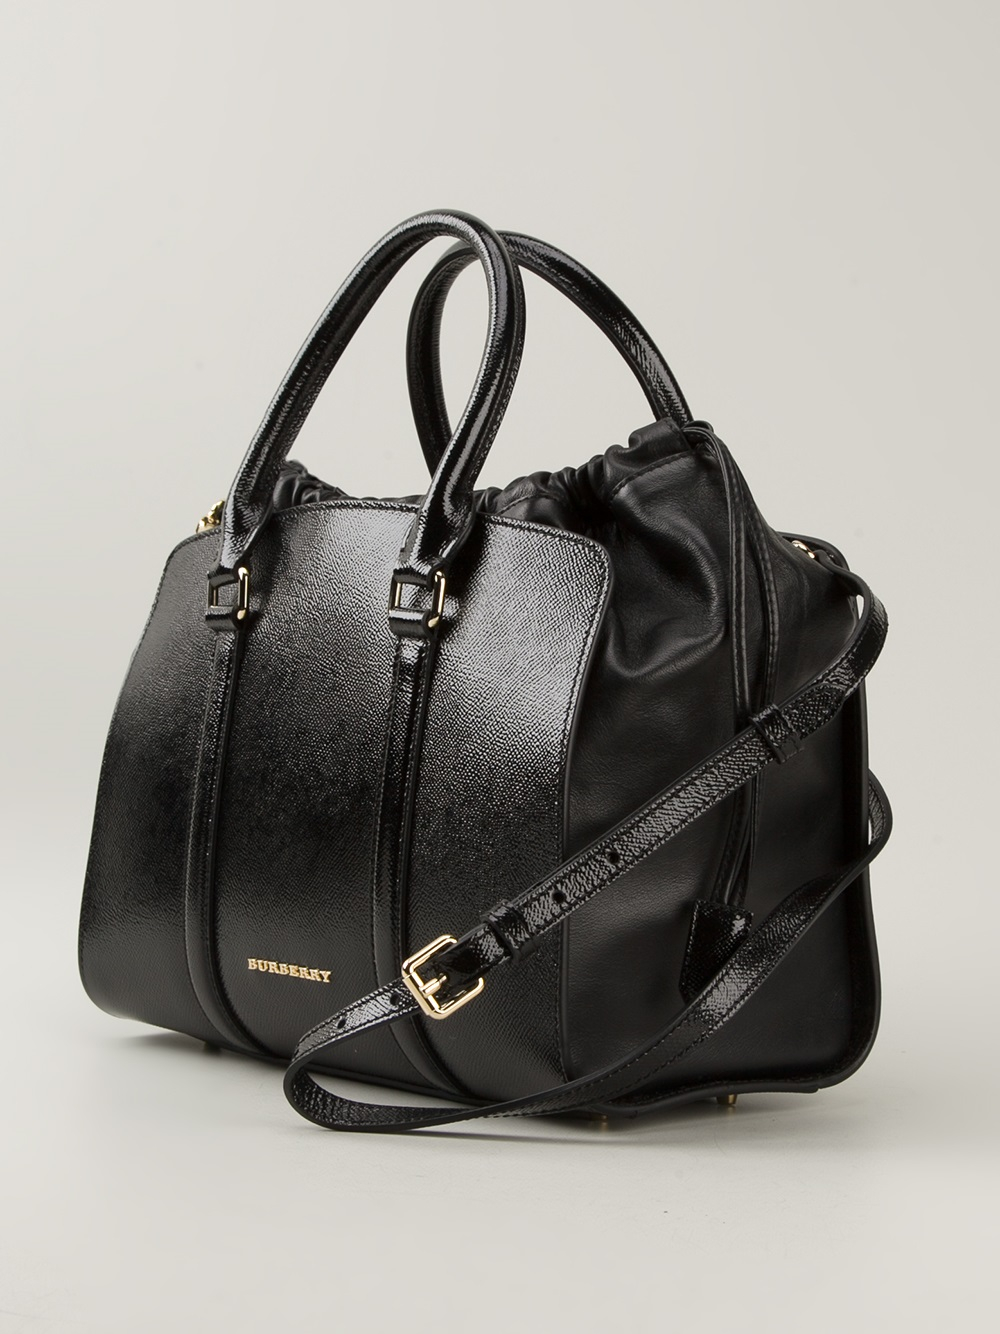 Lyst - Burberry Dinton Tote in Black 02d373483f058